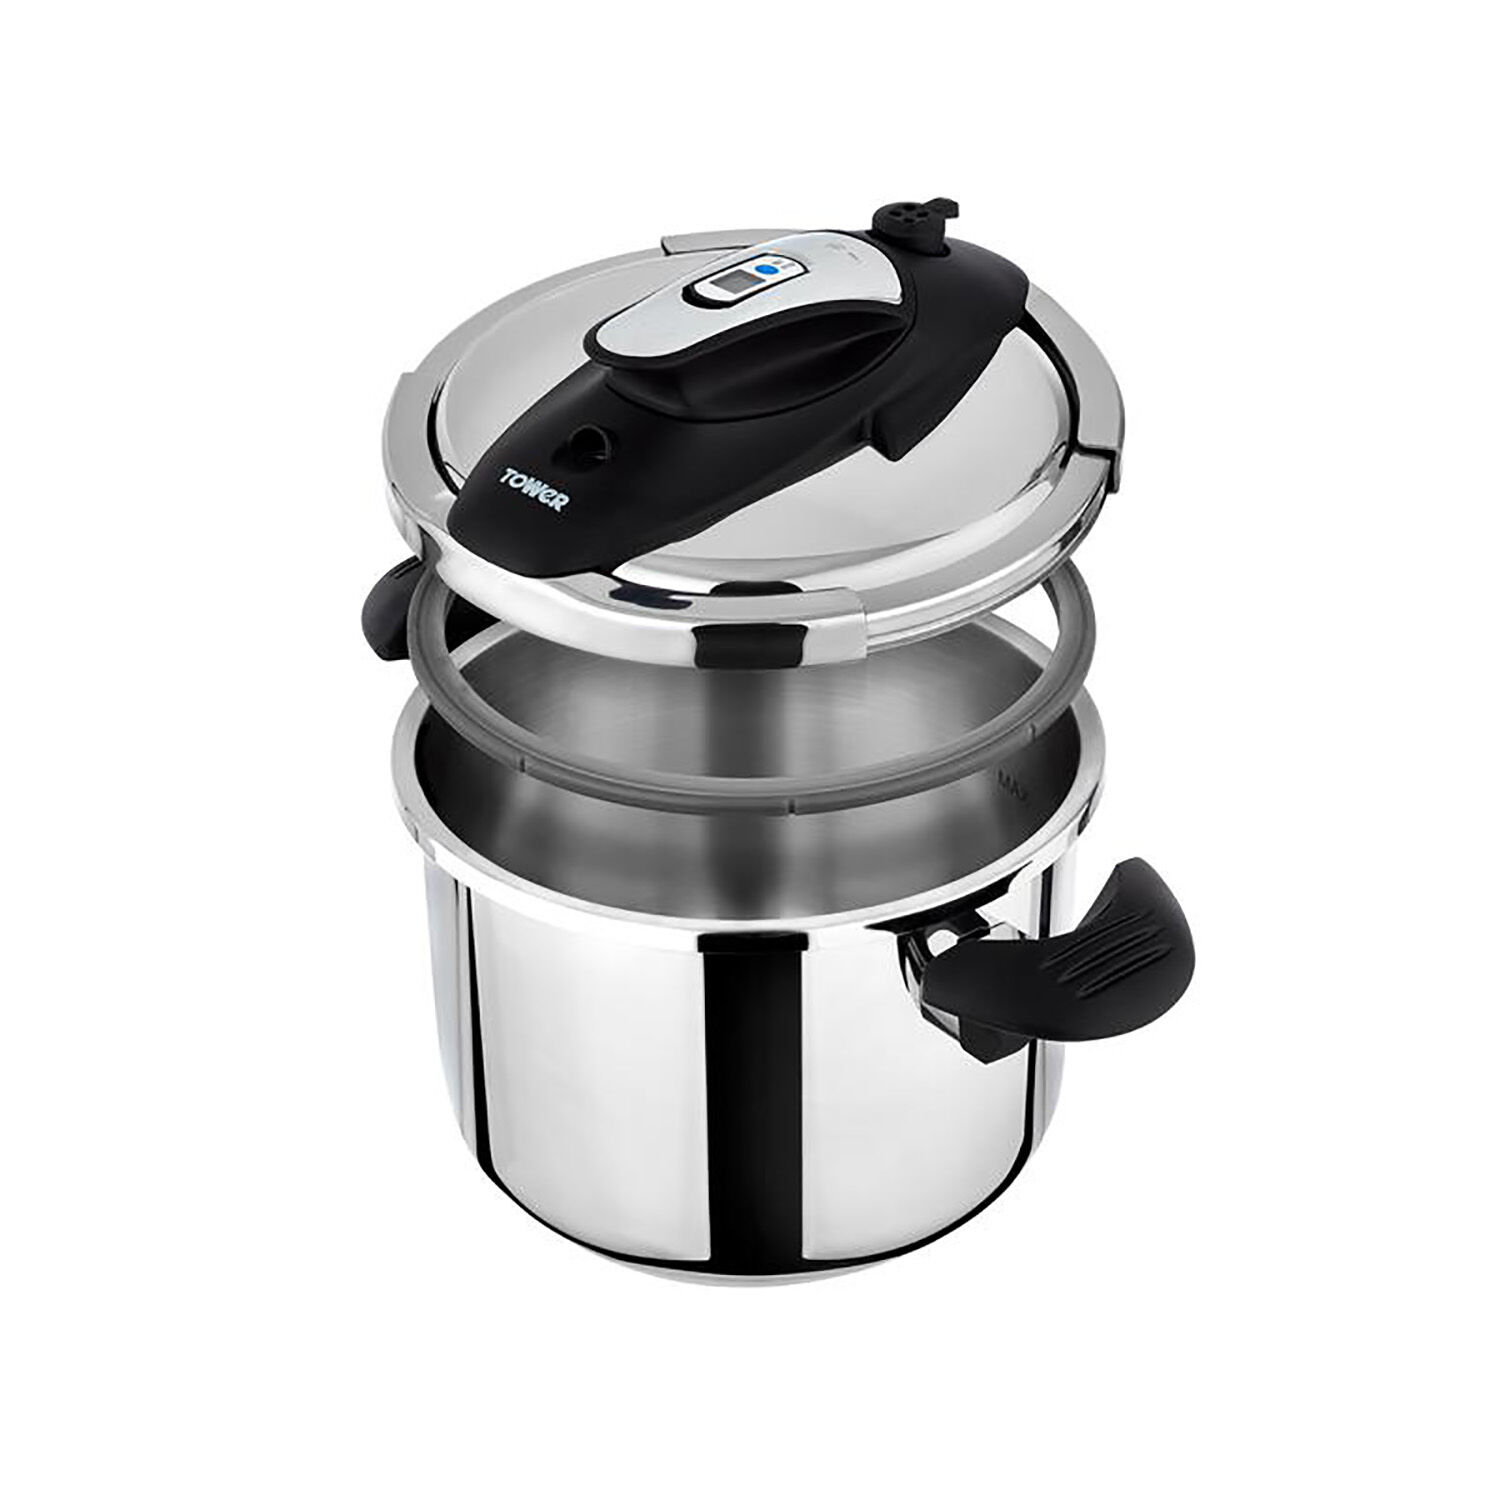 Tower Ultima On Touch Pressure Cooker 6l Home Store More